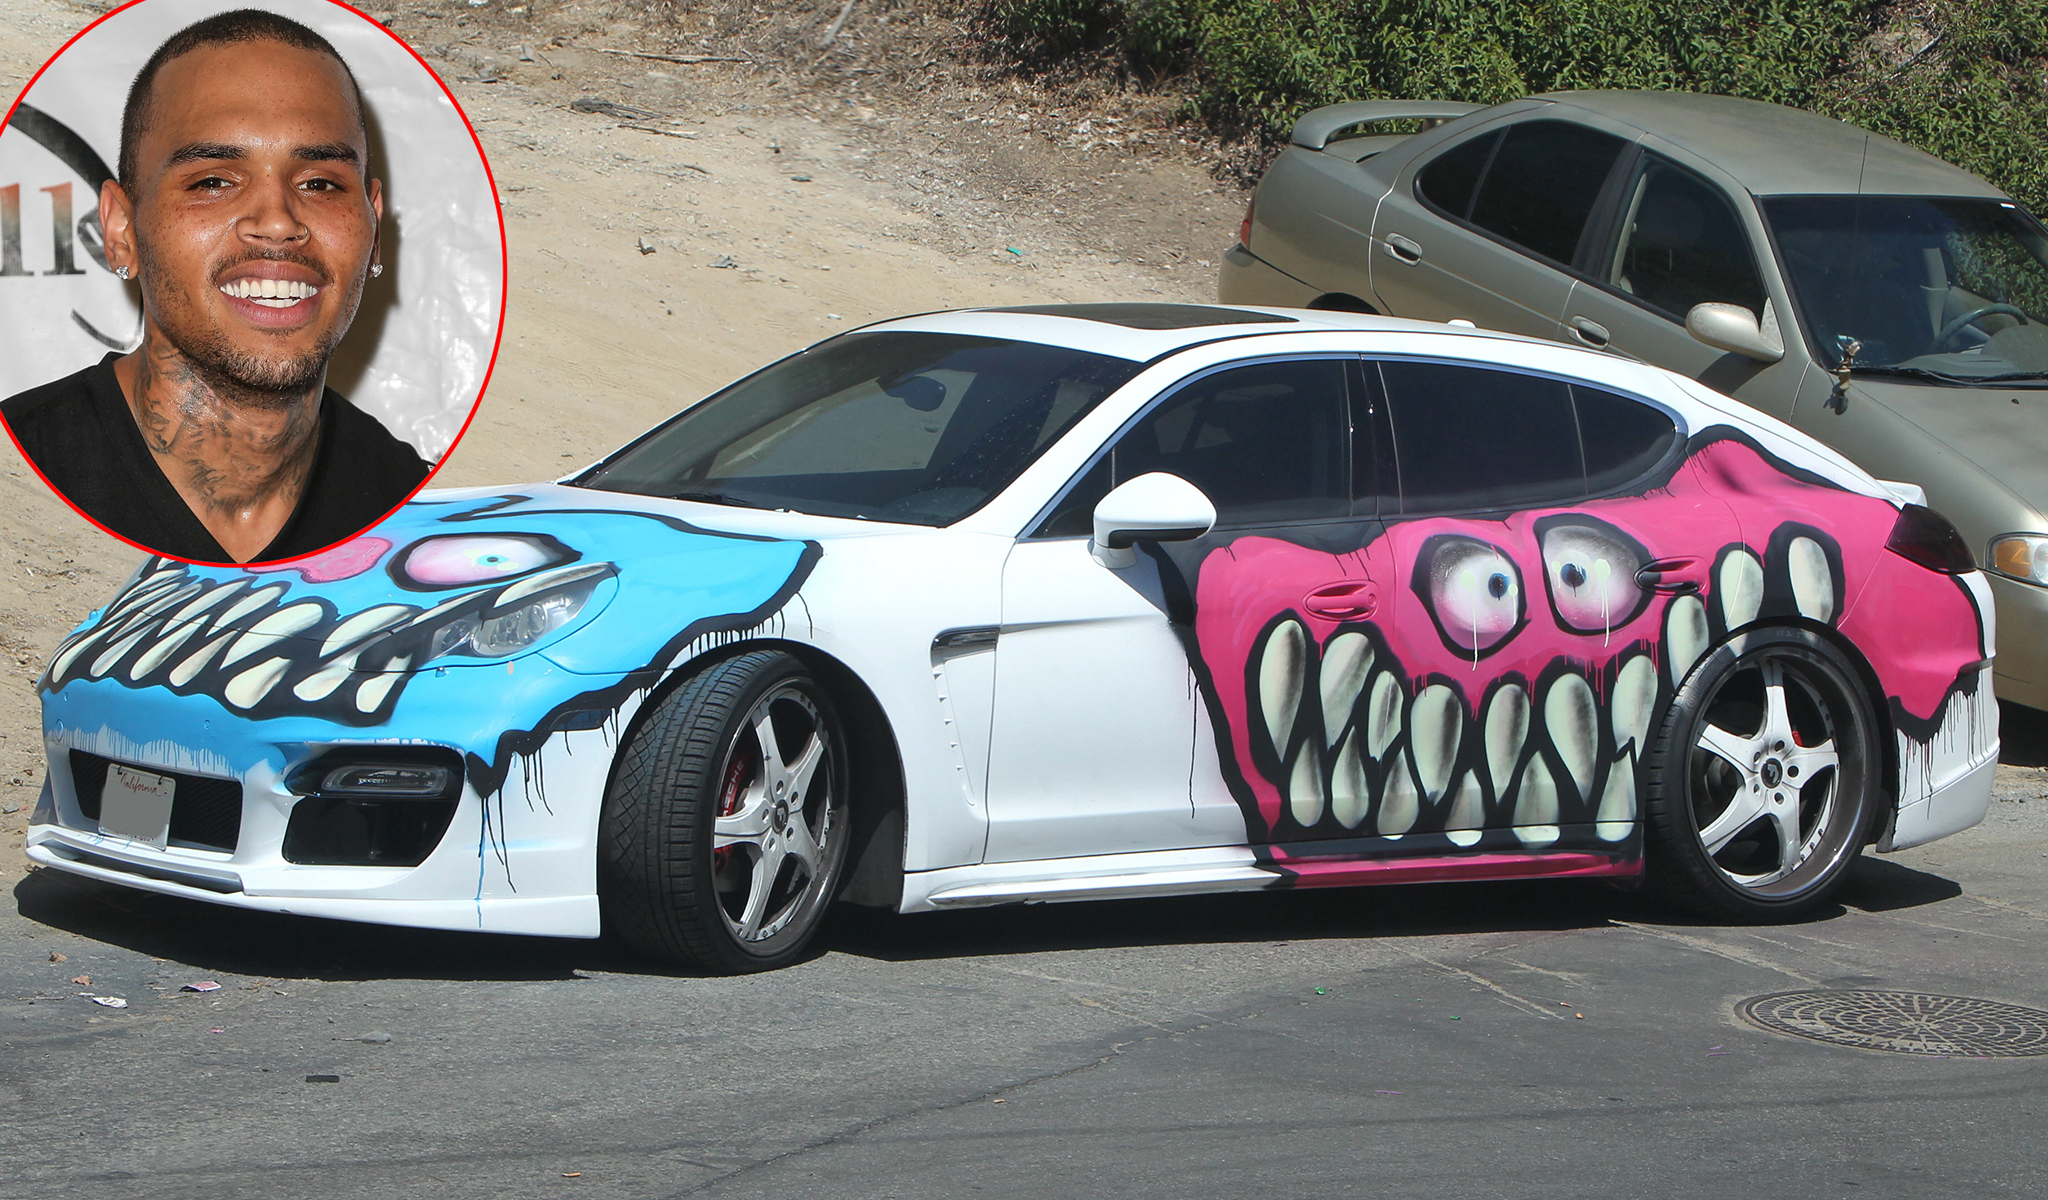 Chris Brown and his graffiti-painted car (Getty Images/X17online.com)